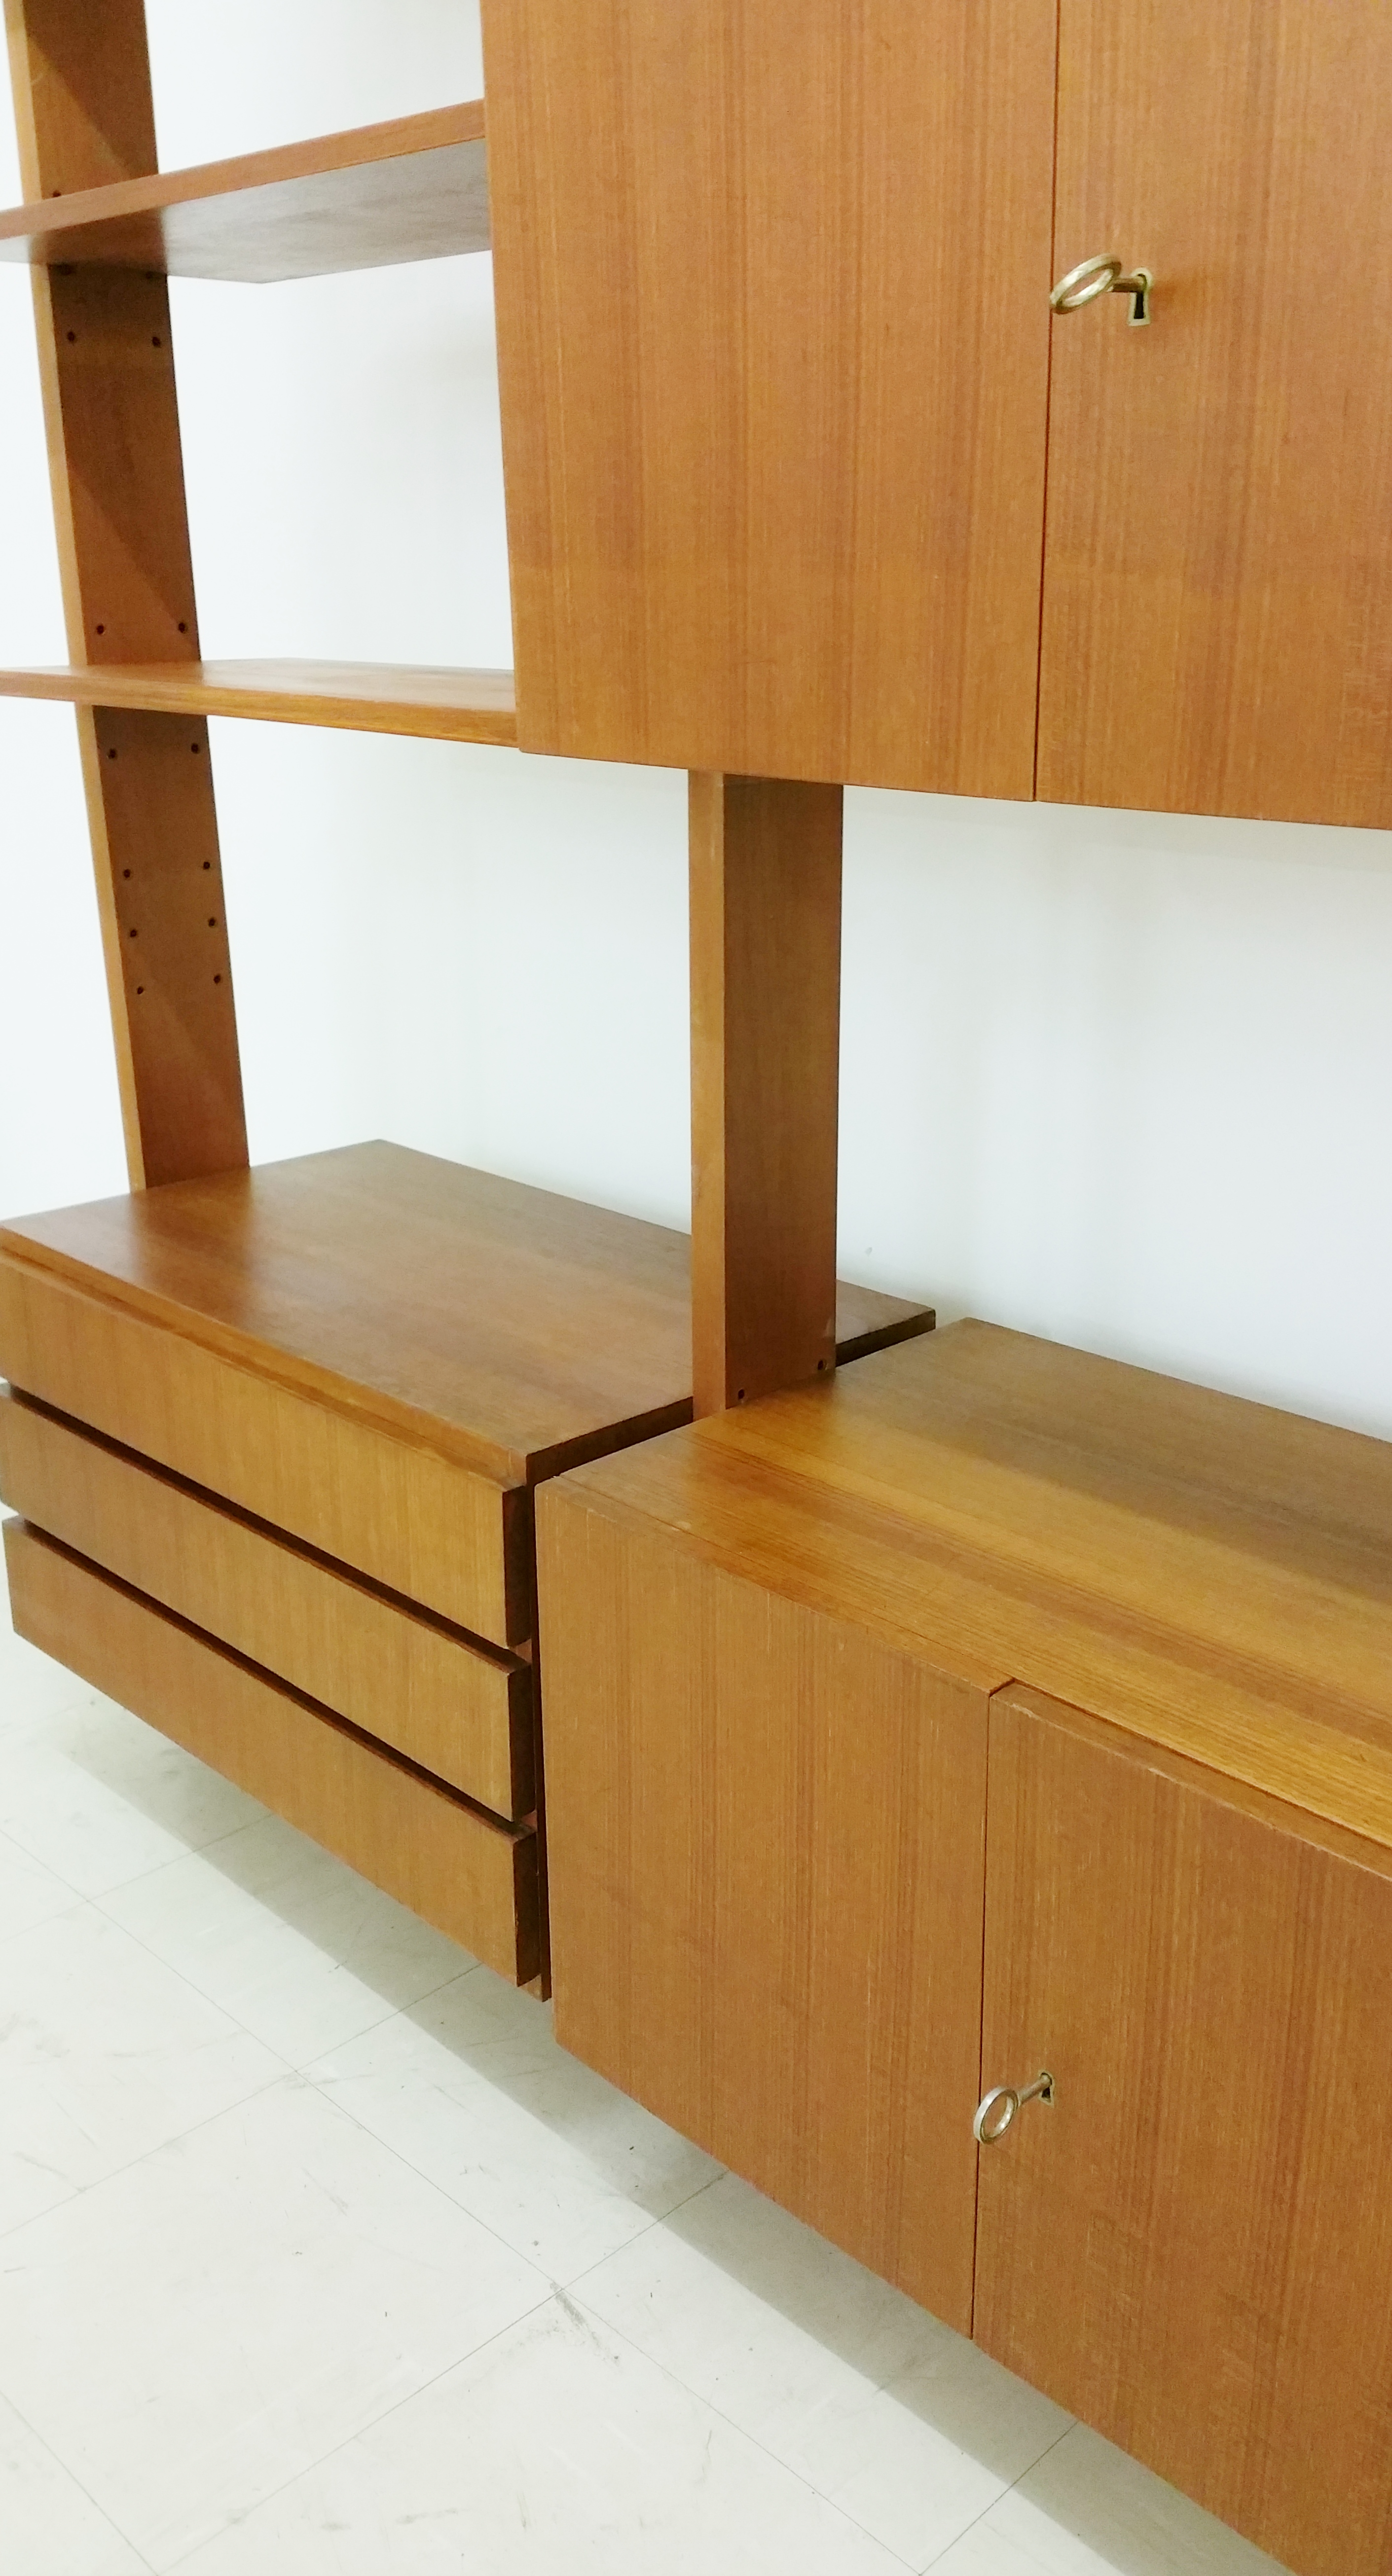 Bespoke sixties shelving